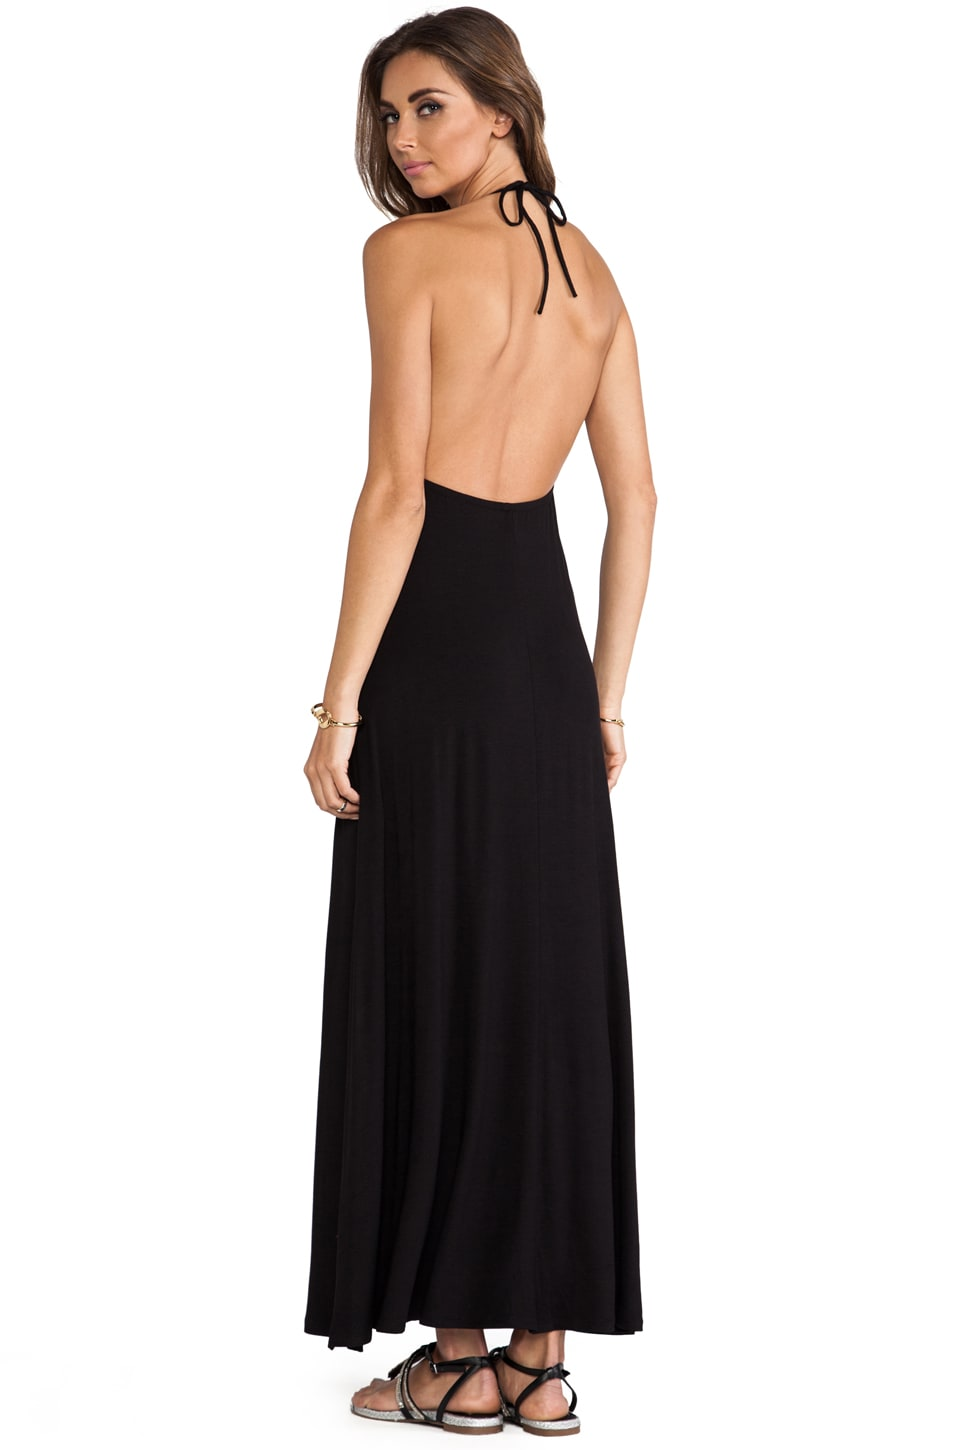 Naven Halter Cut Out Maxi Dress in Black